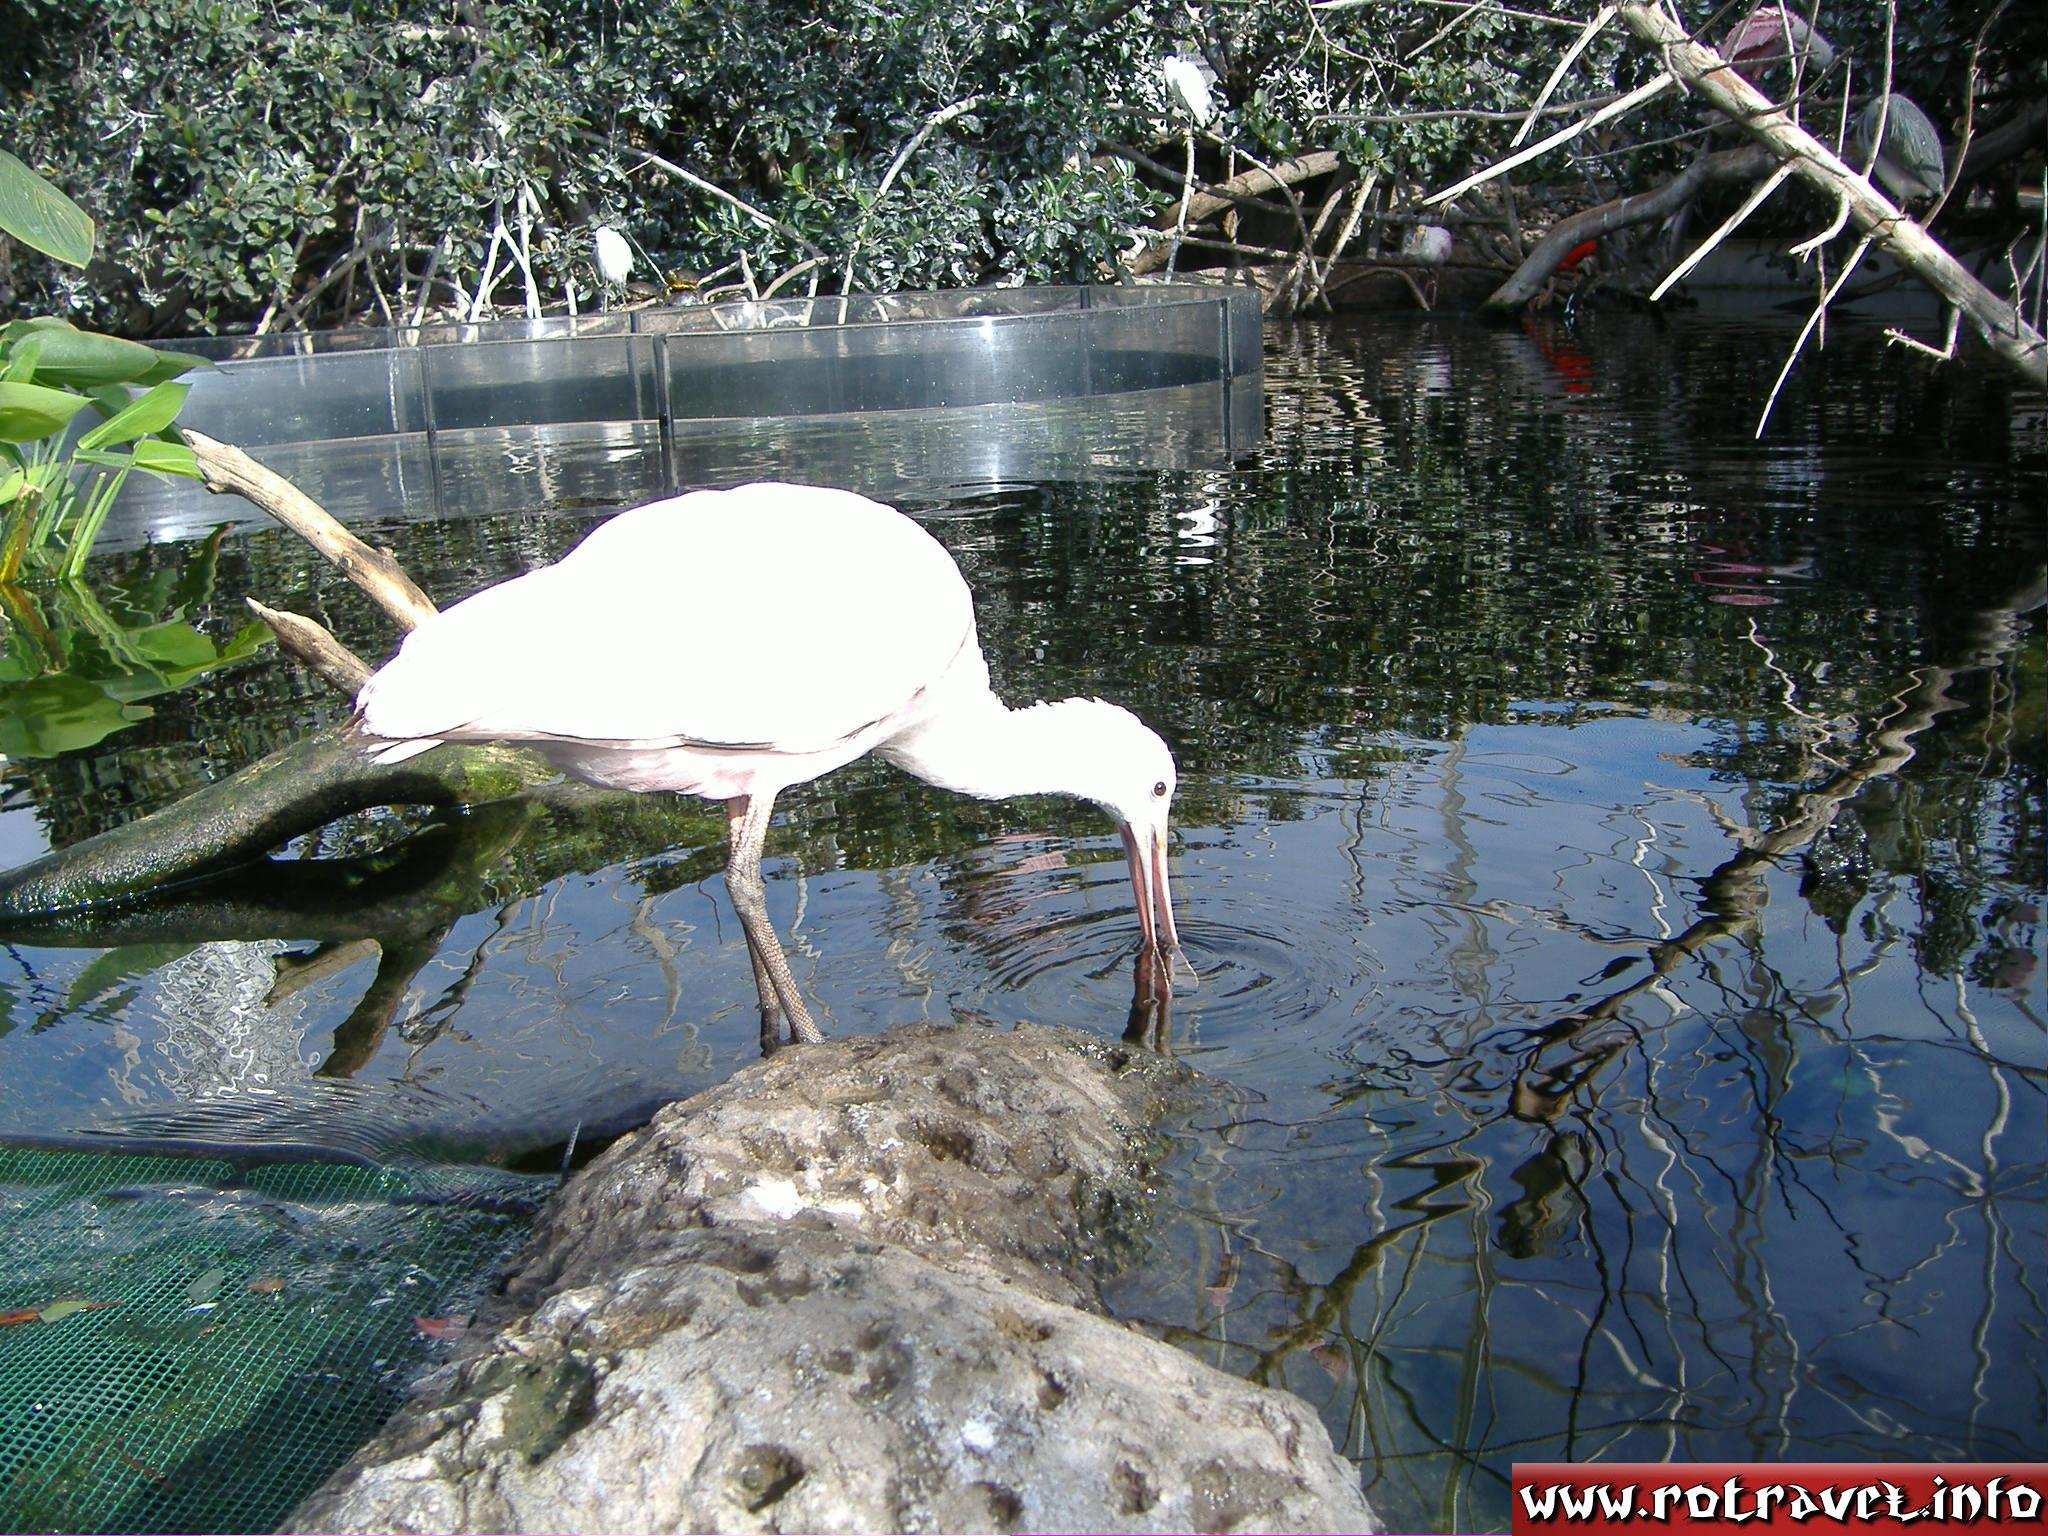 I think this is a spoonbill or egret...